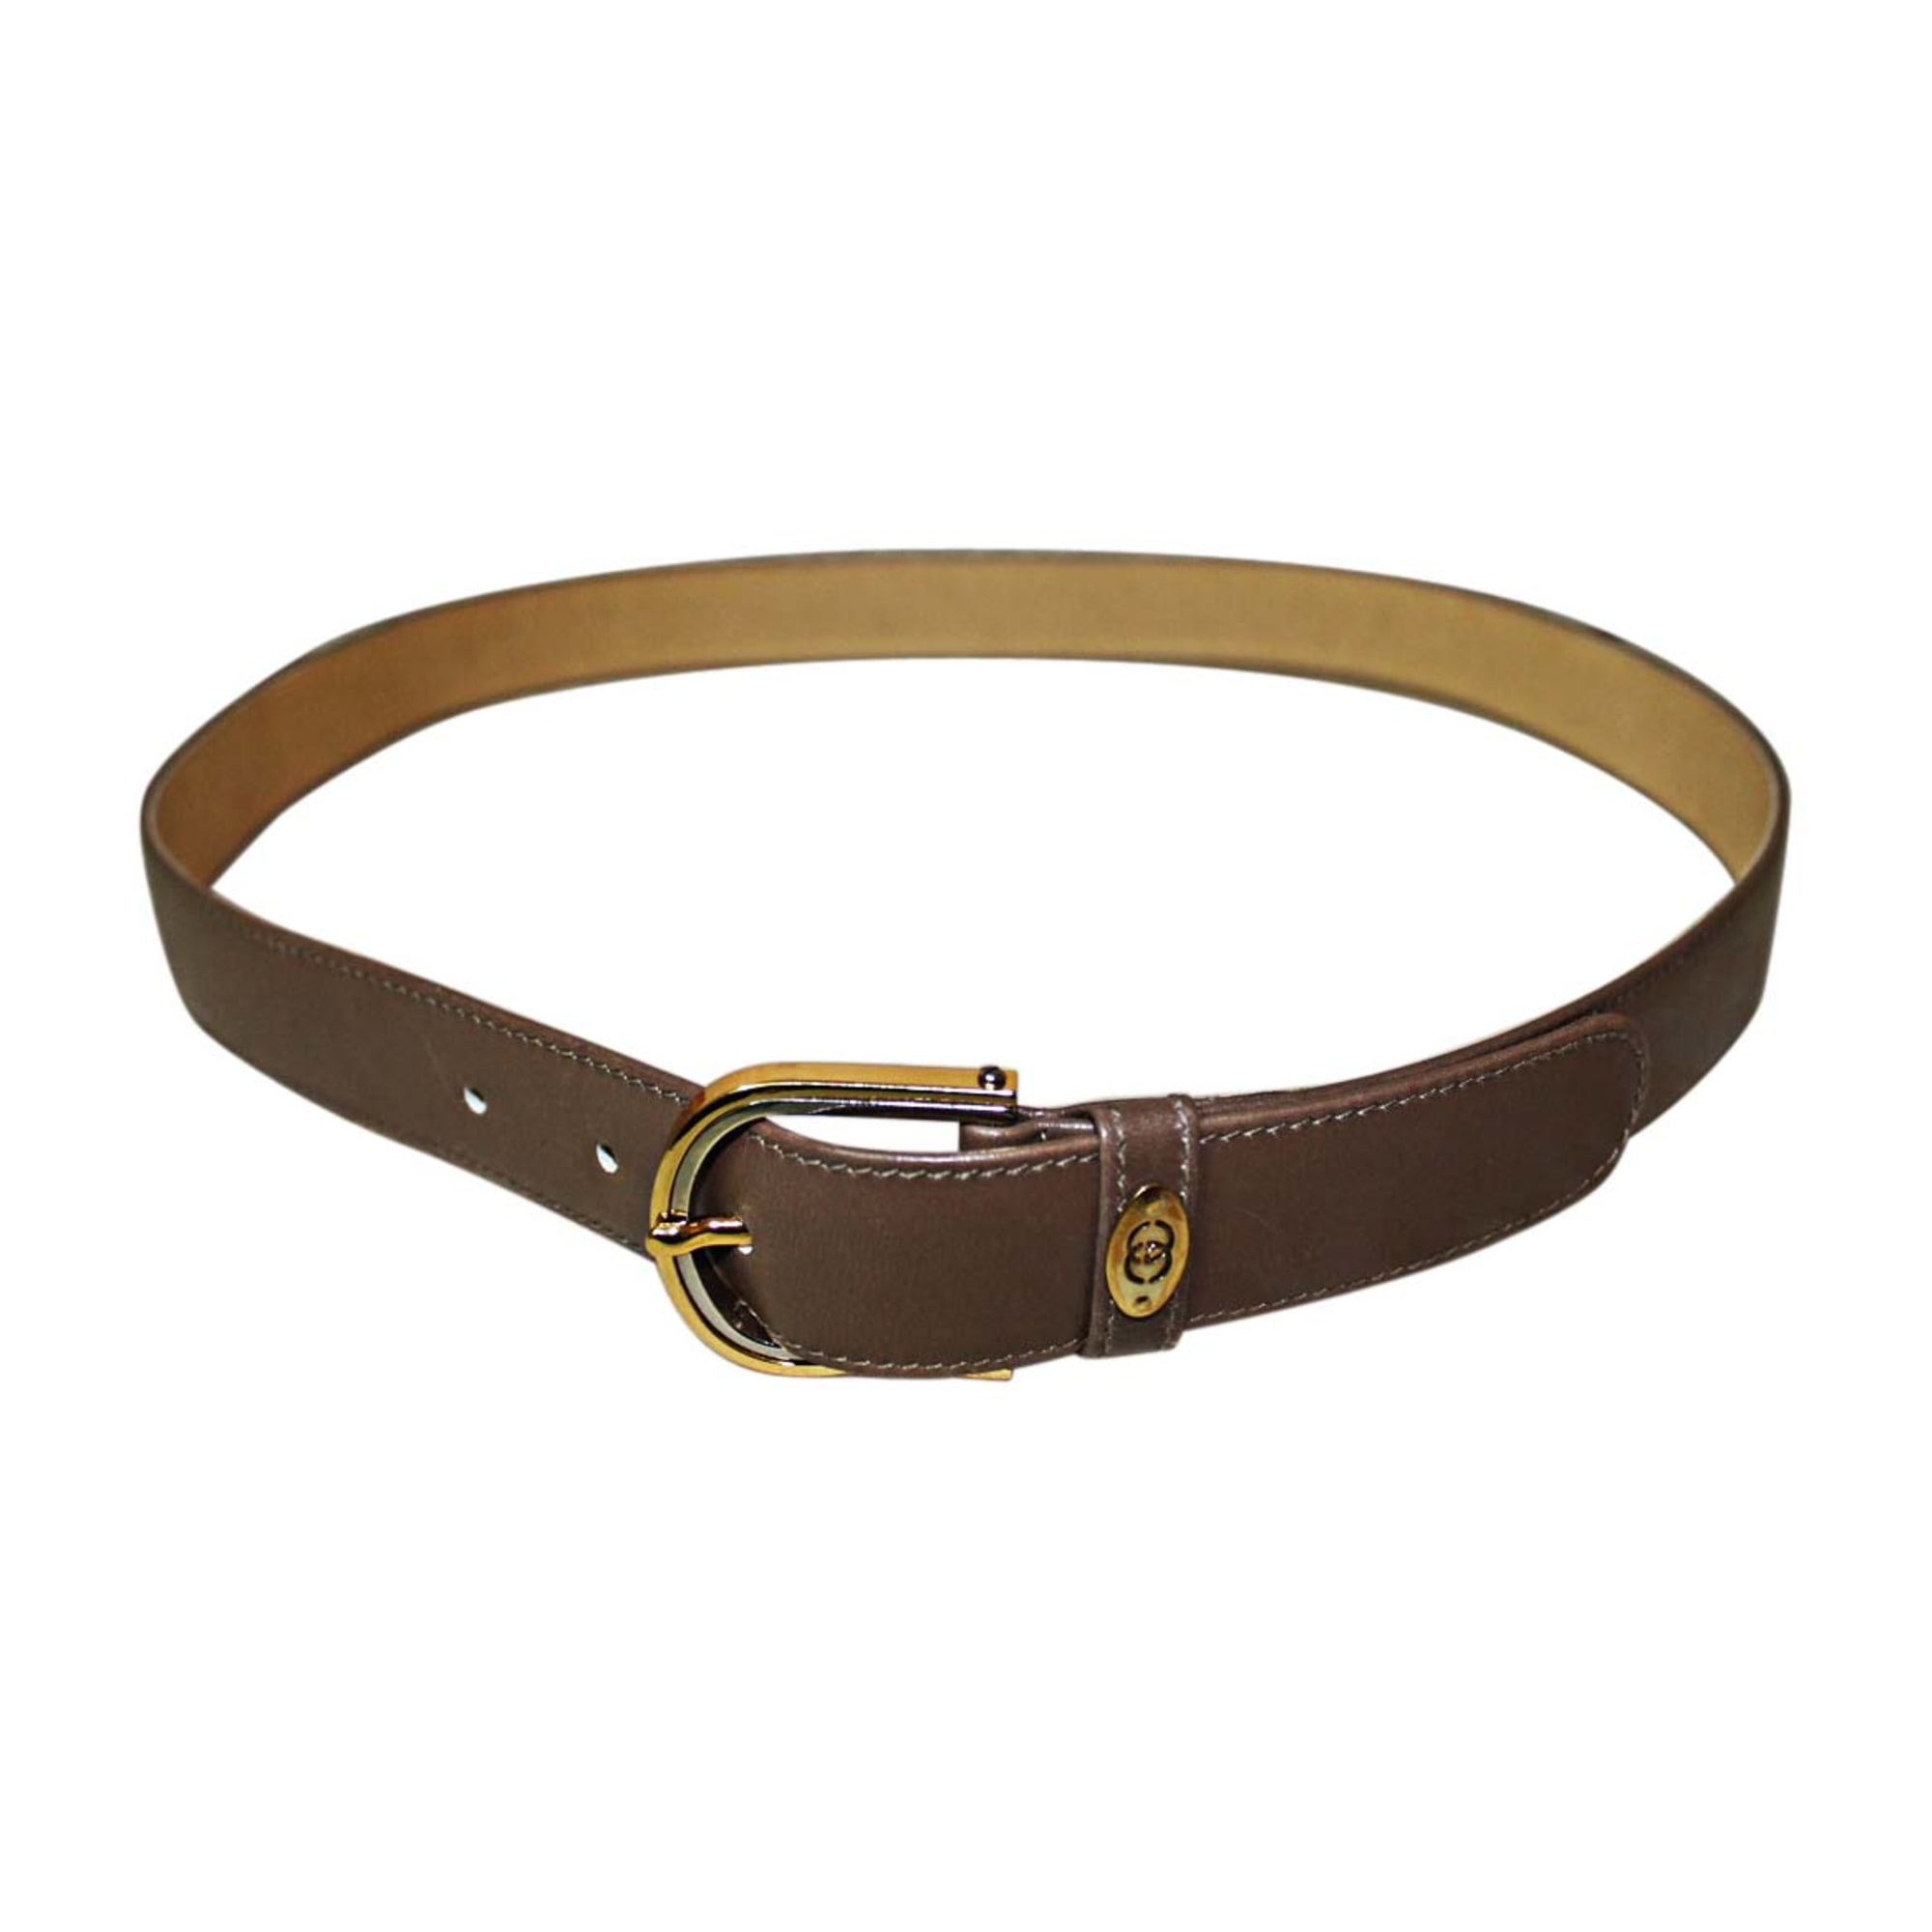 Ceinture GUCCI 95 marron - 7412518 fb1aa784853